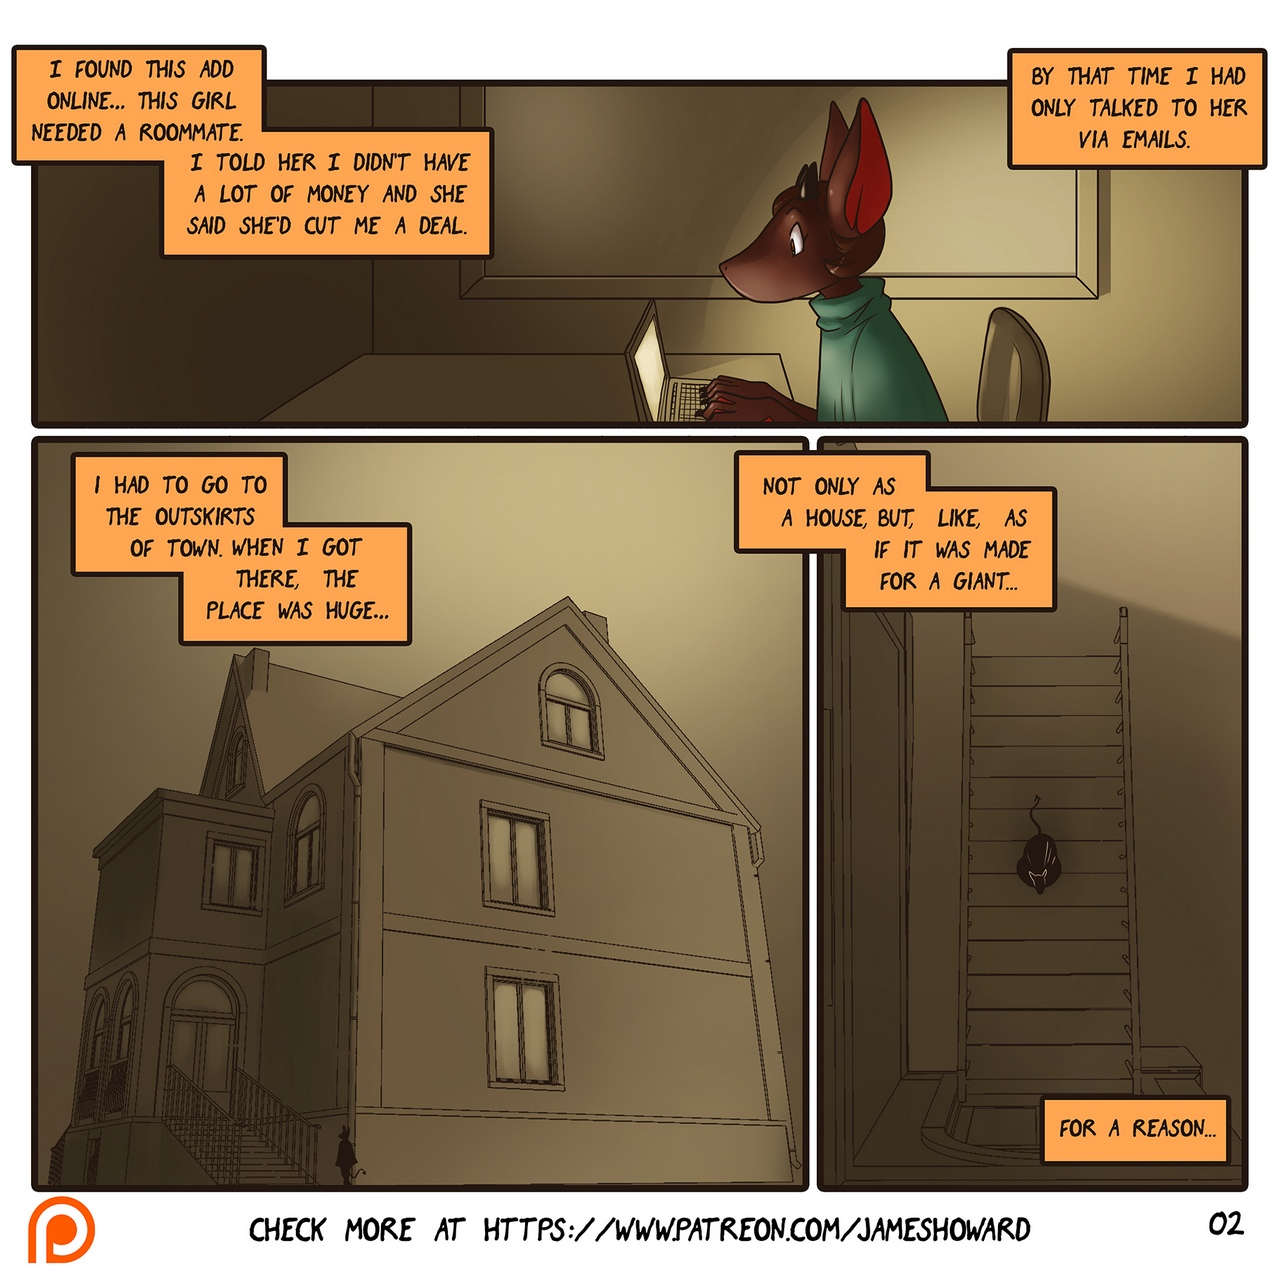 Vore-Story-1-The-Watermelon 3 free sex comic